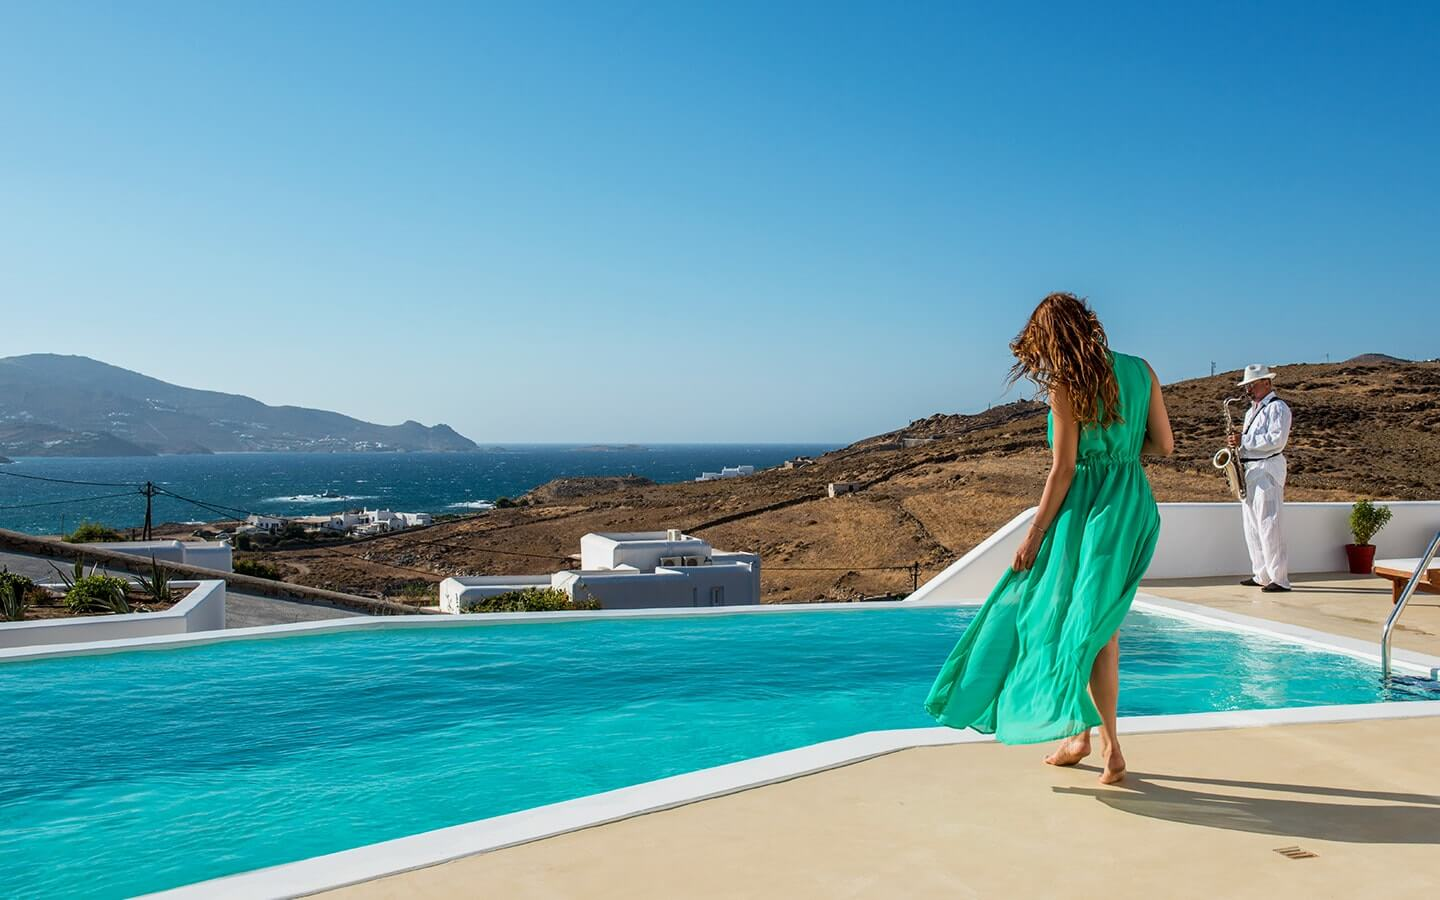 Lady in a green dress standing near the pool overlooking the sea at Just White VIP Villas Mykonos.